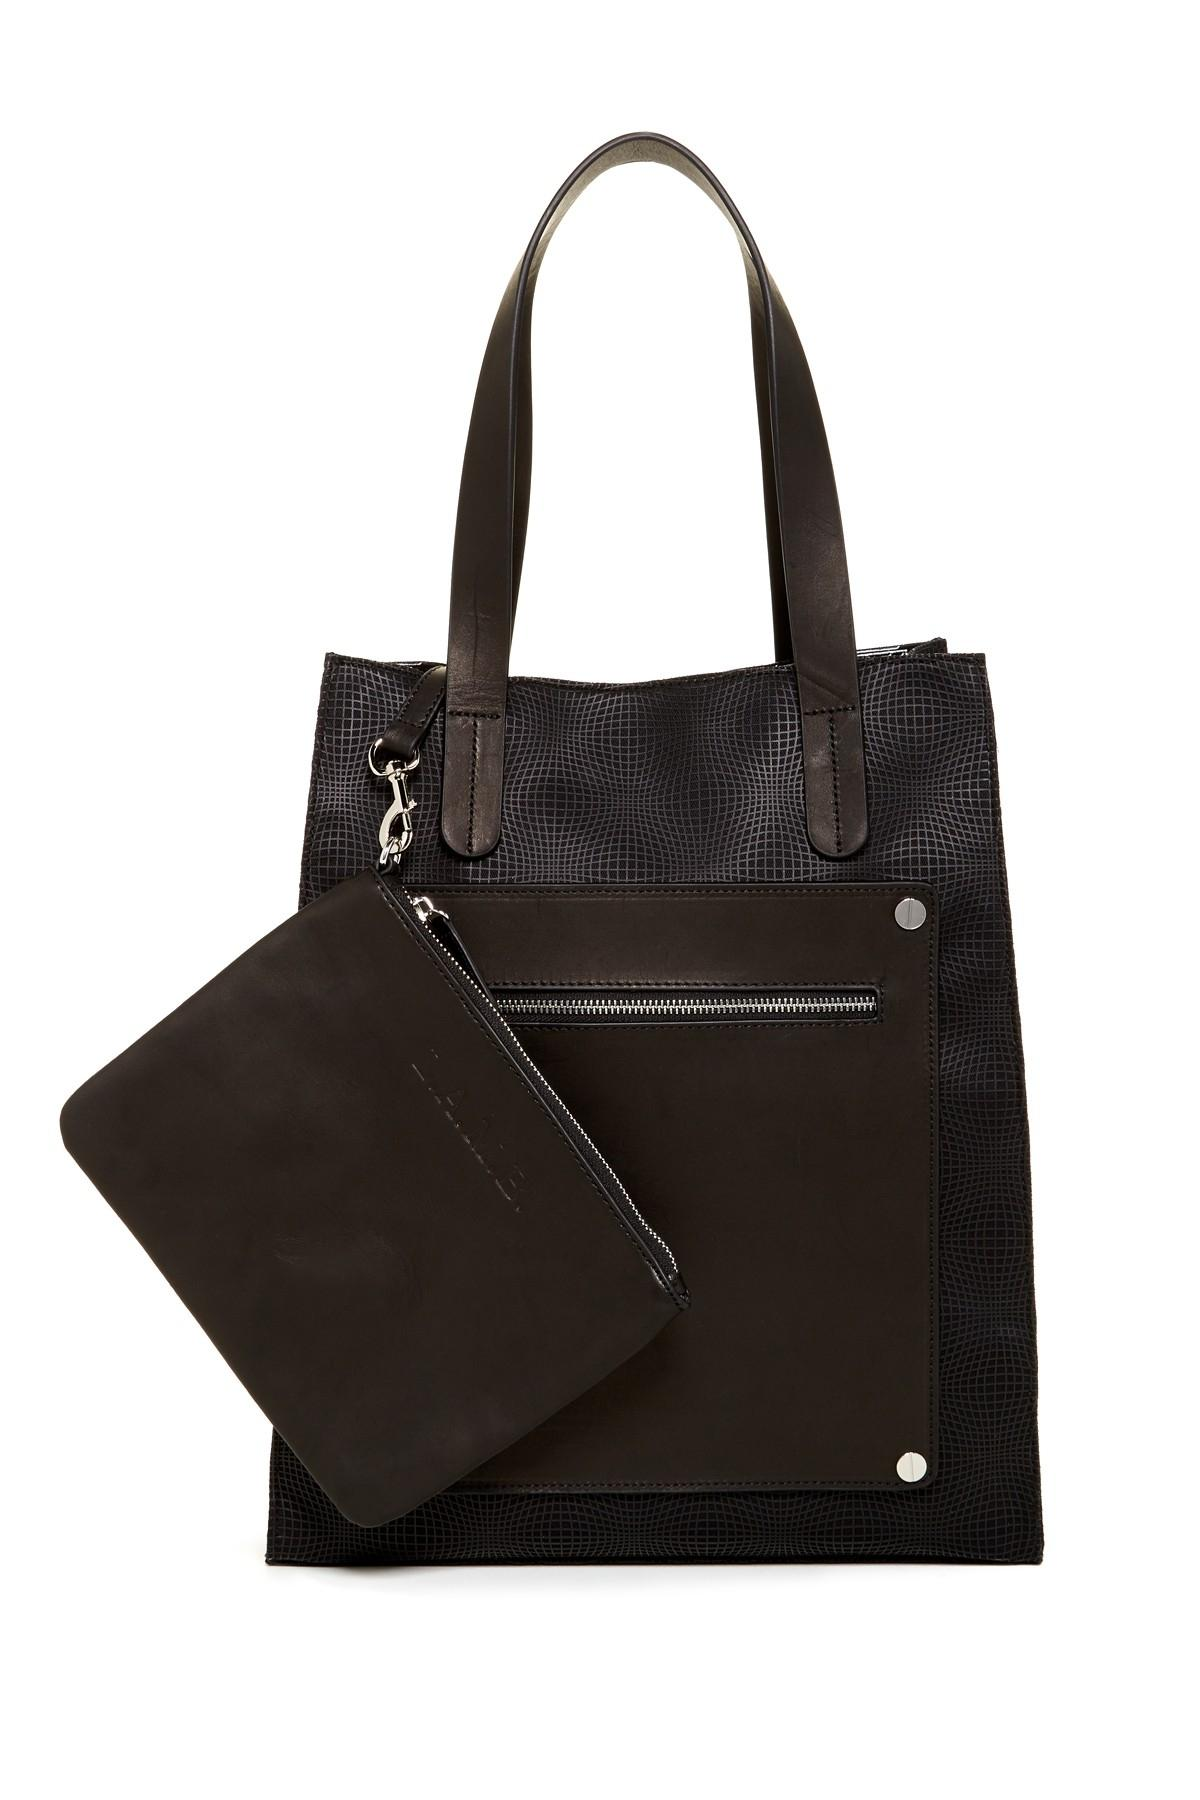 L.A.M.B. Tote in Black